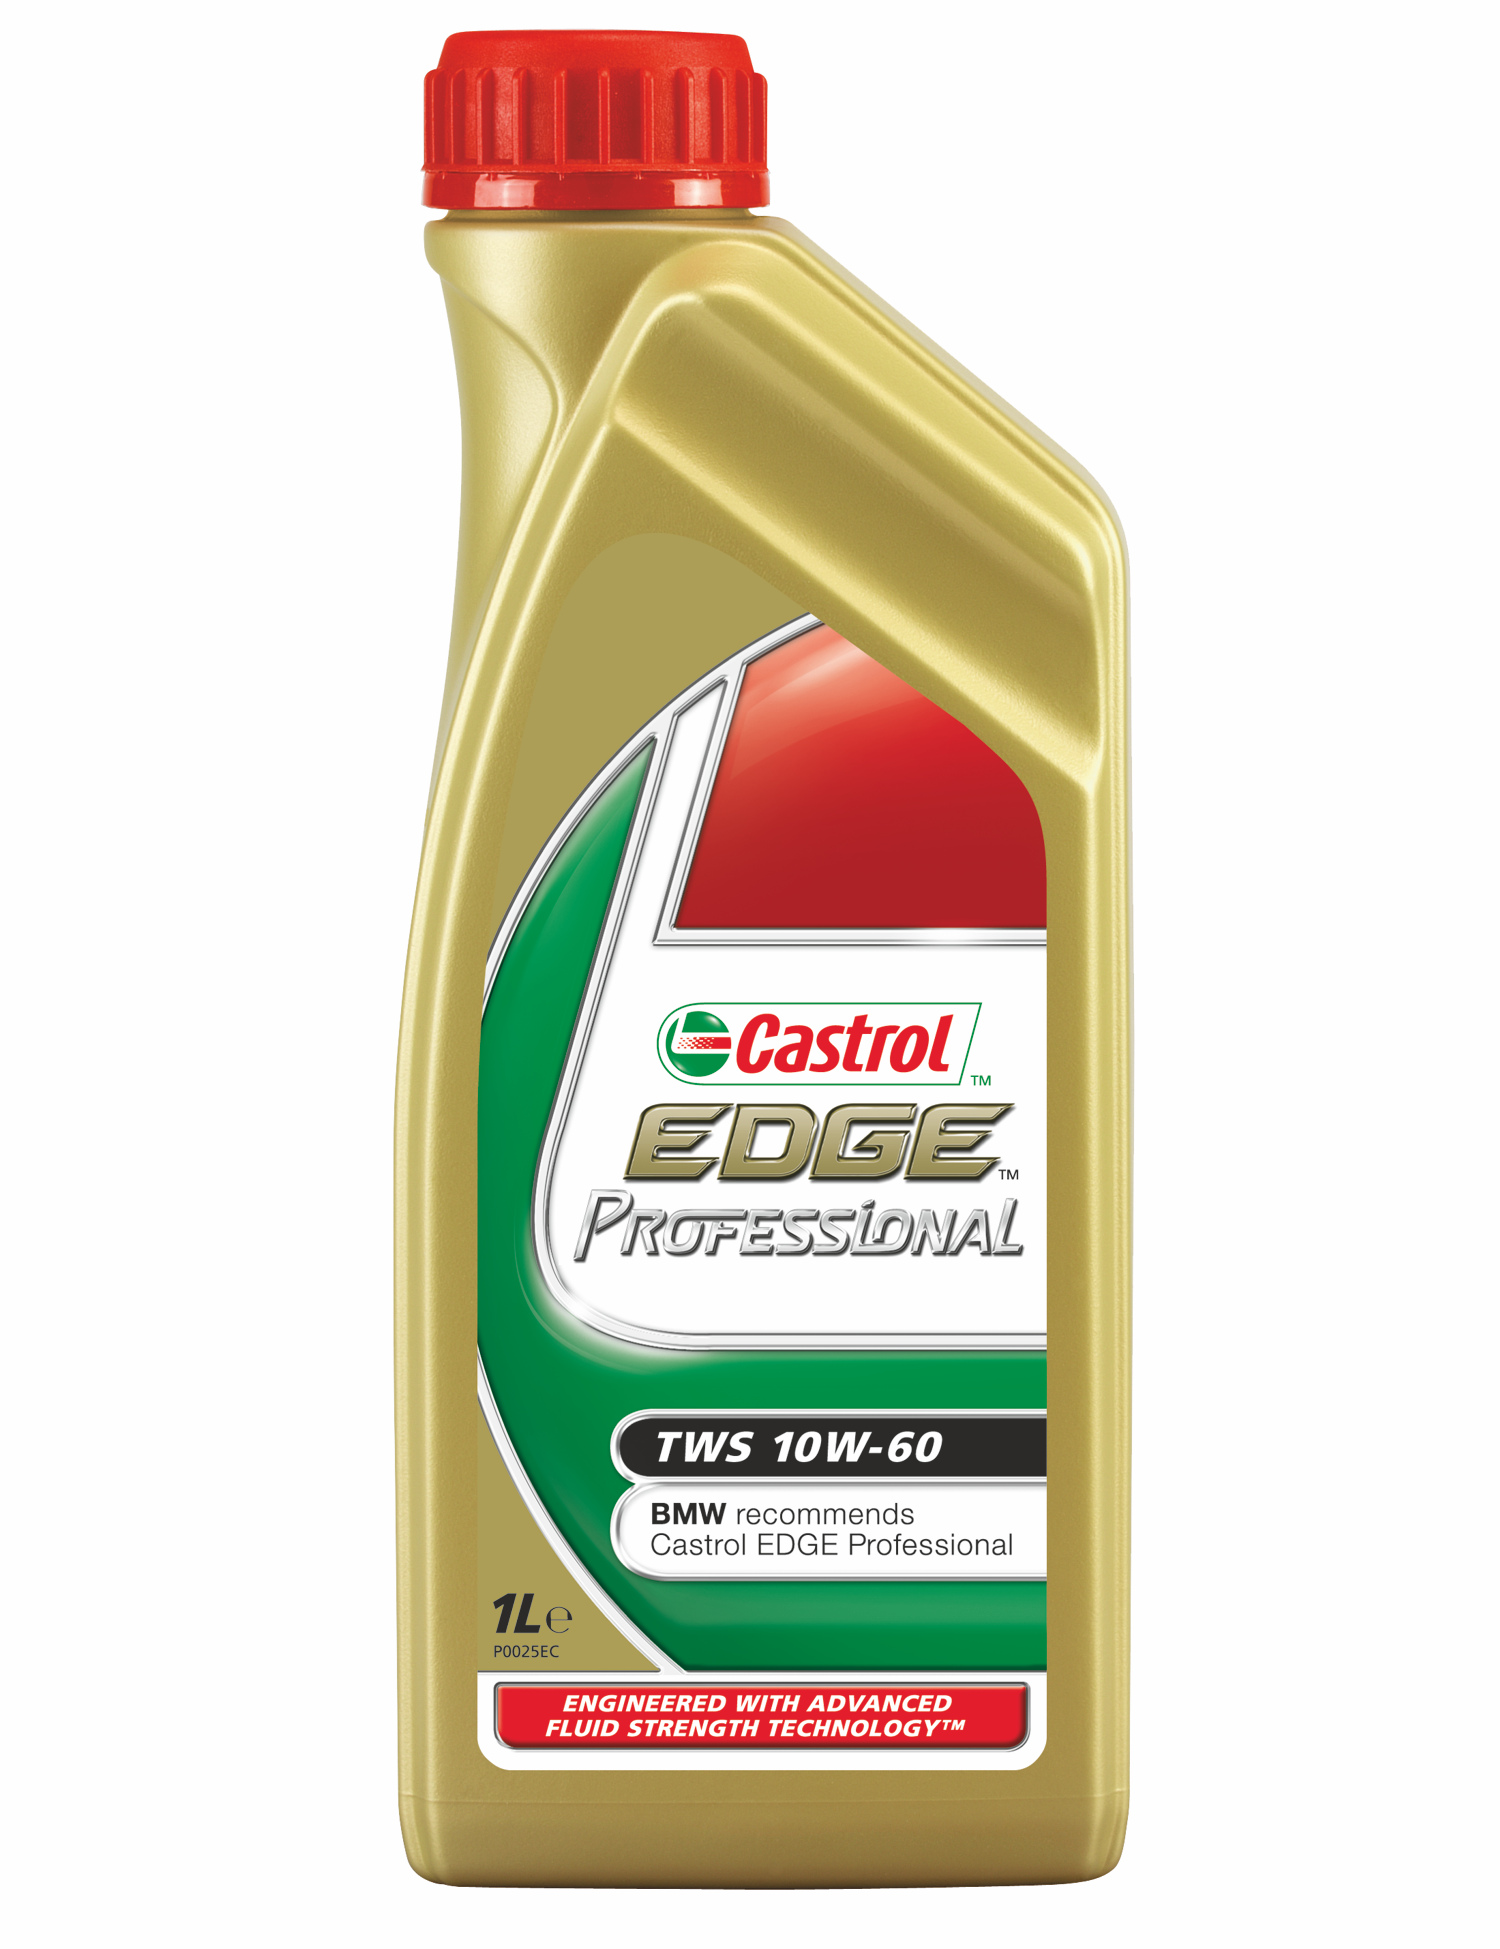 castrol edge professional fully synthetic tws 10w60 bmw. Black Bedroom Furniture Sets. Home Design Ideas